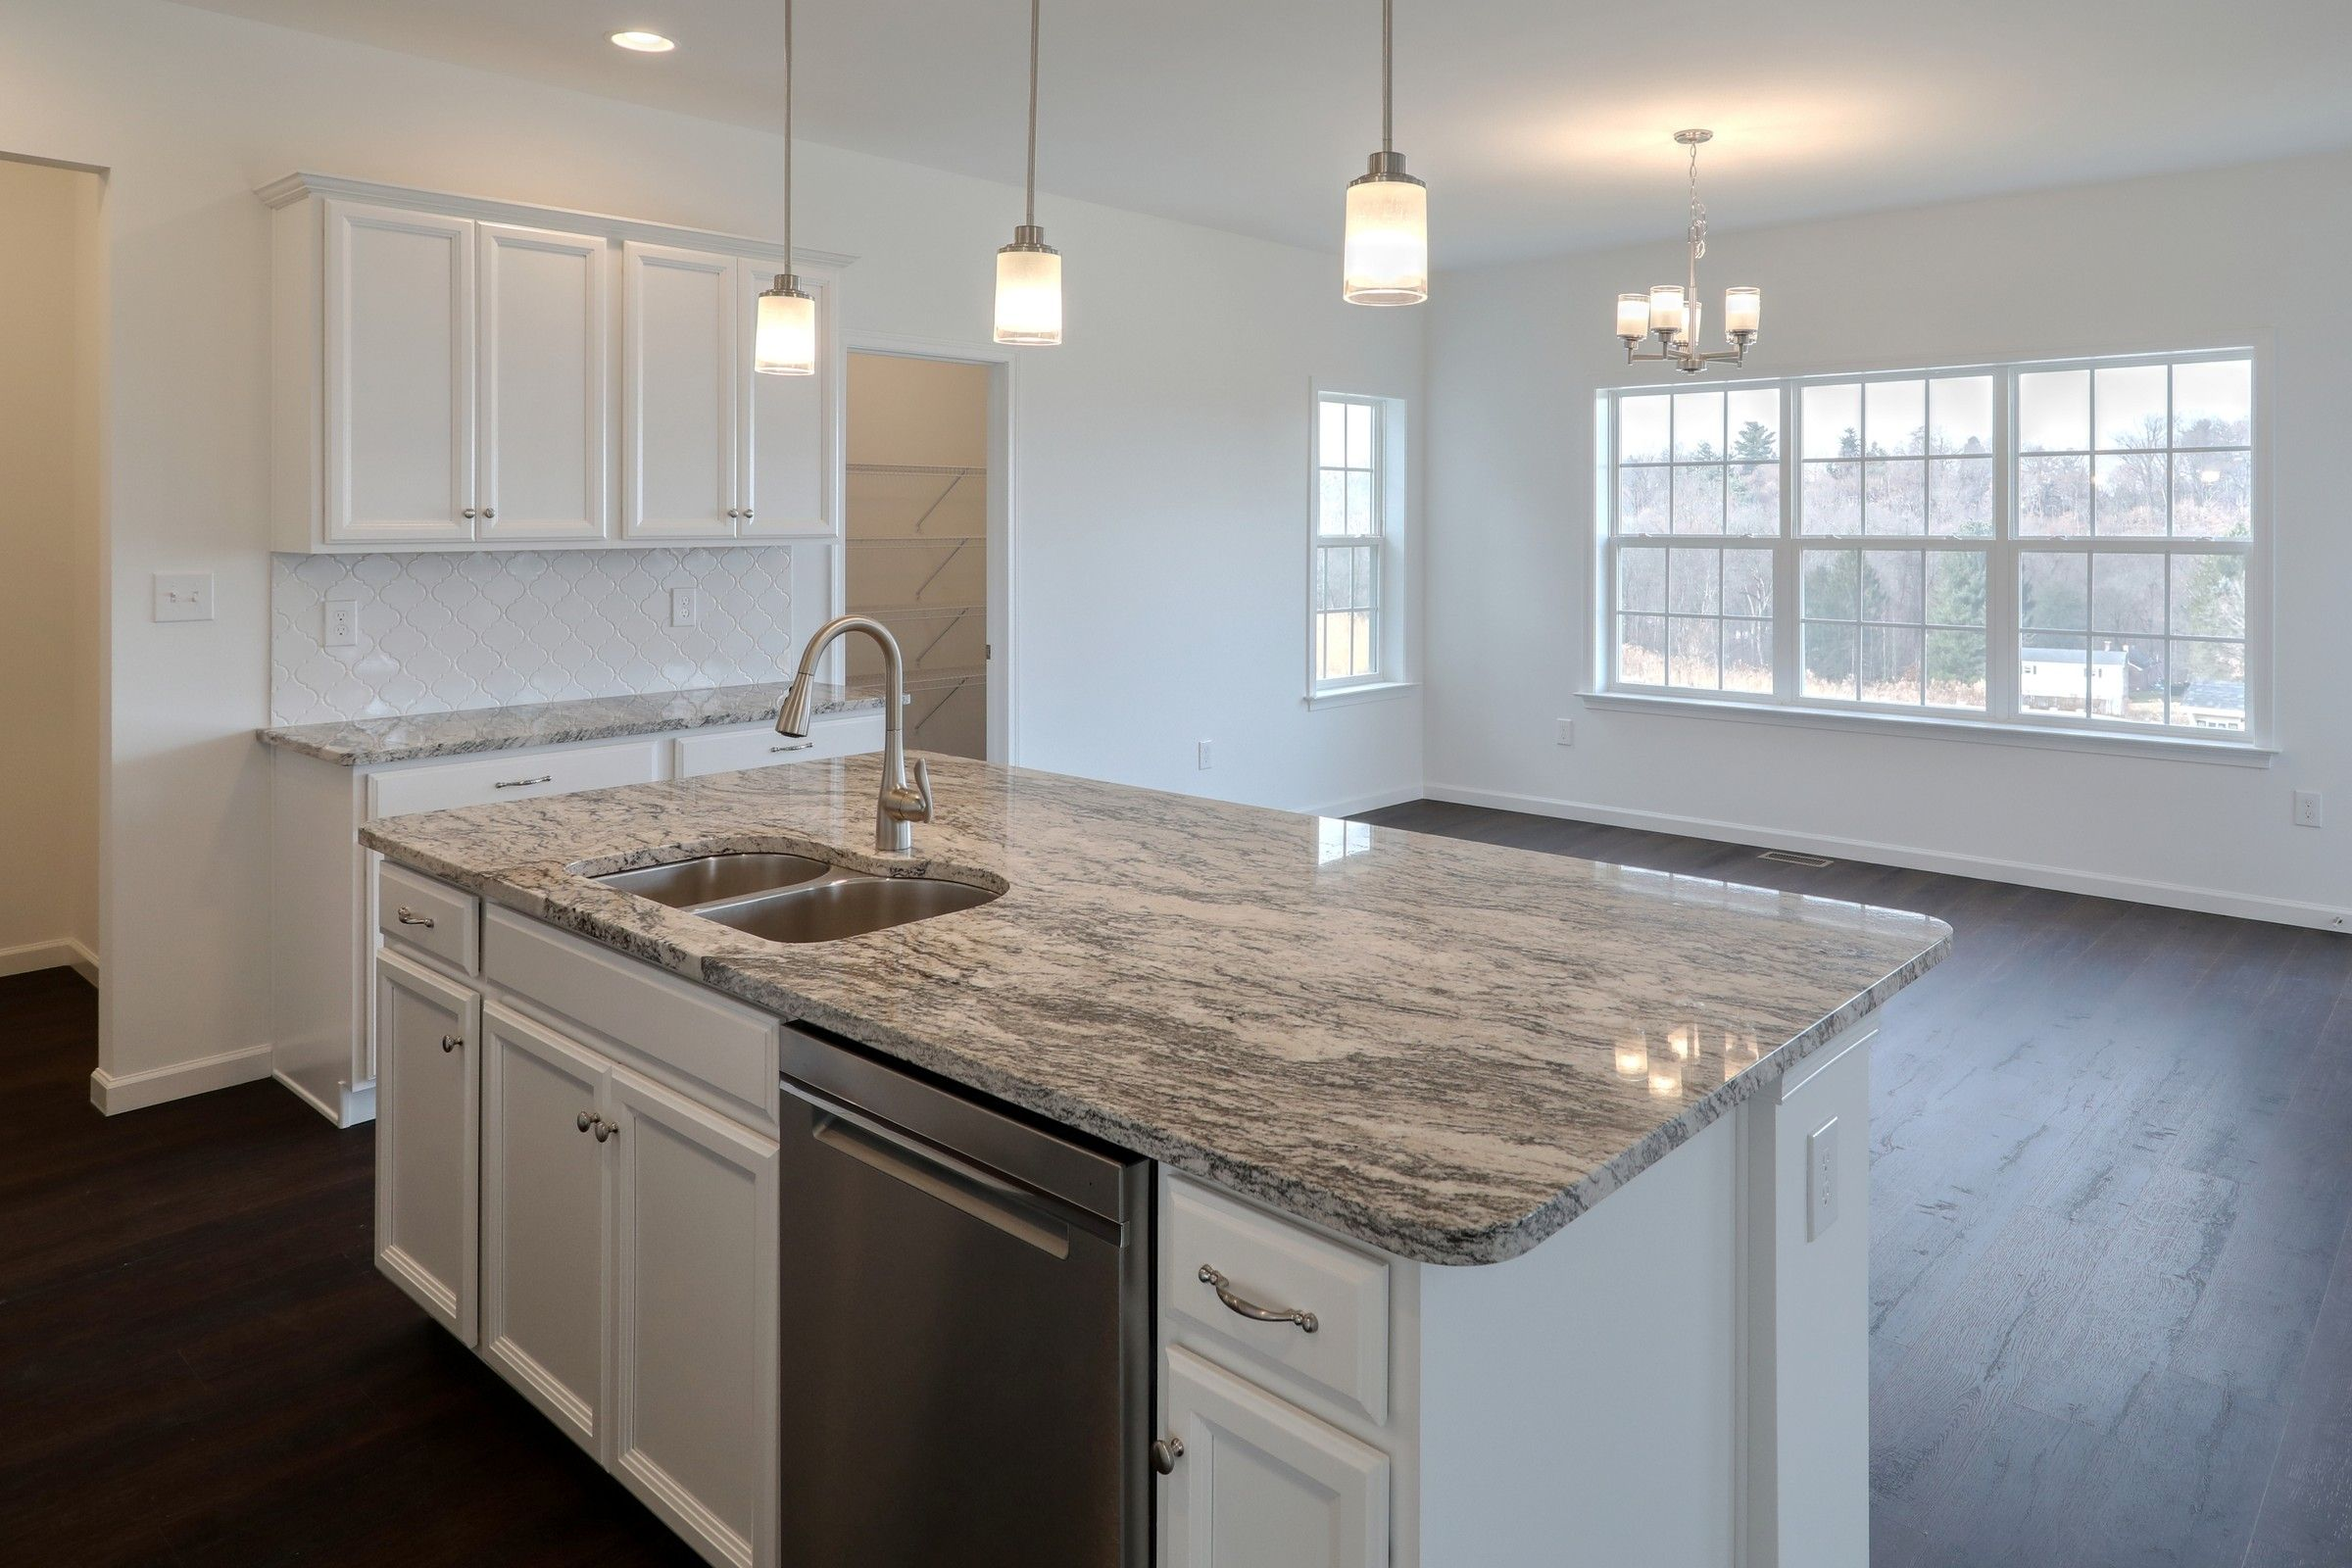 Kitchen featured in the Lachlan Vintage By Keystone Custom Homes in York, PA